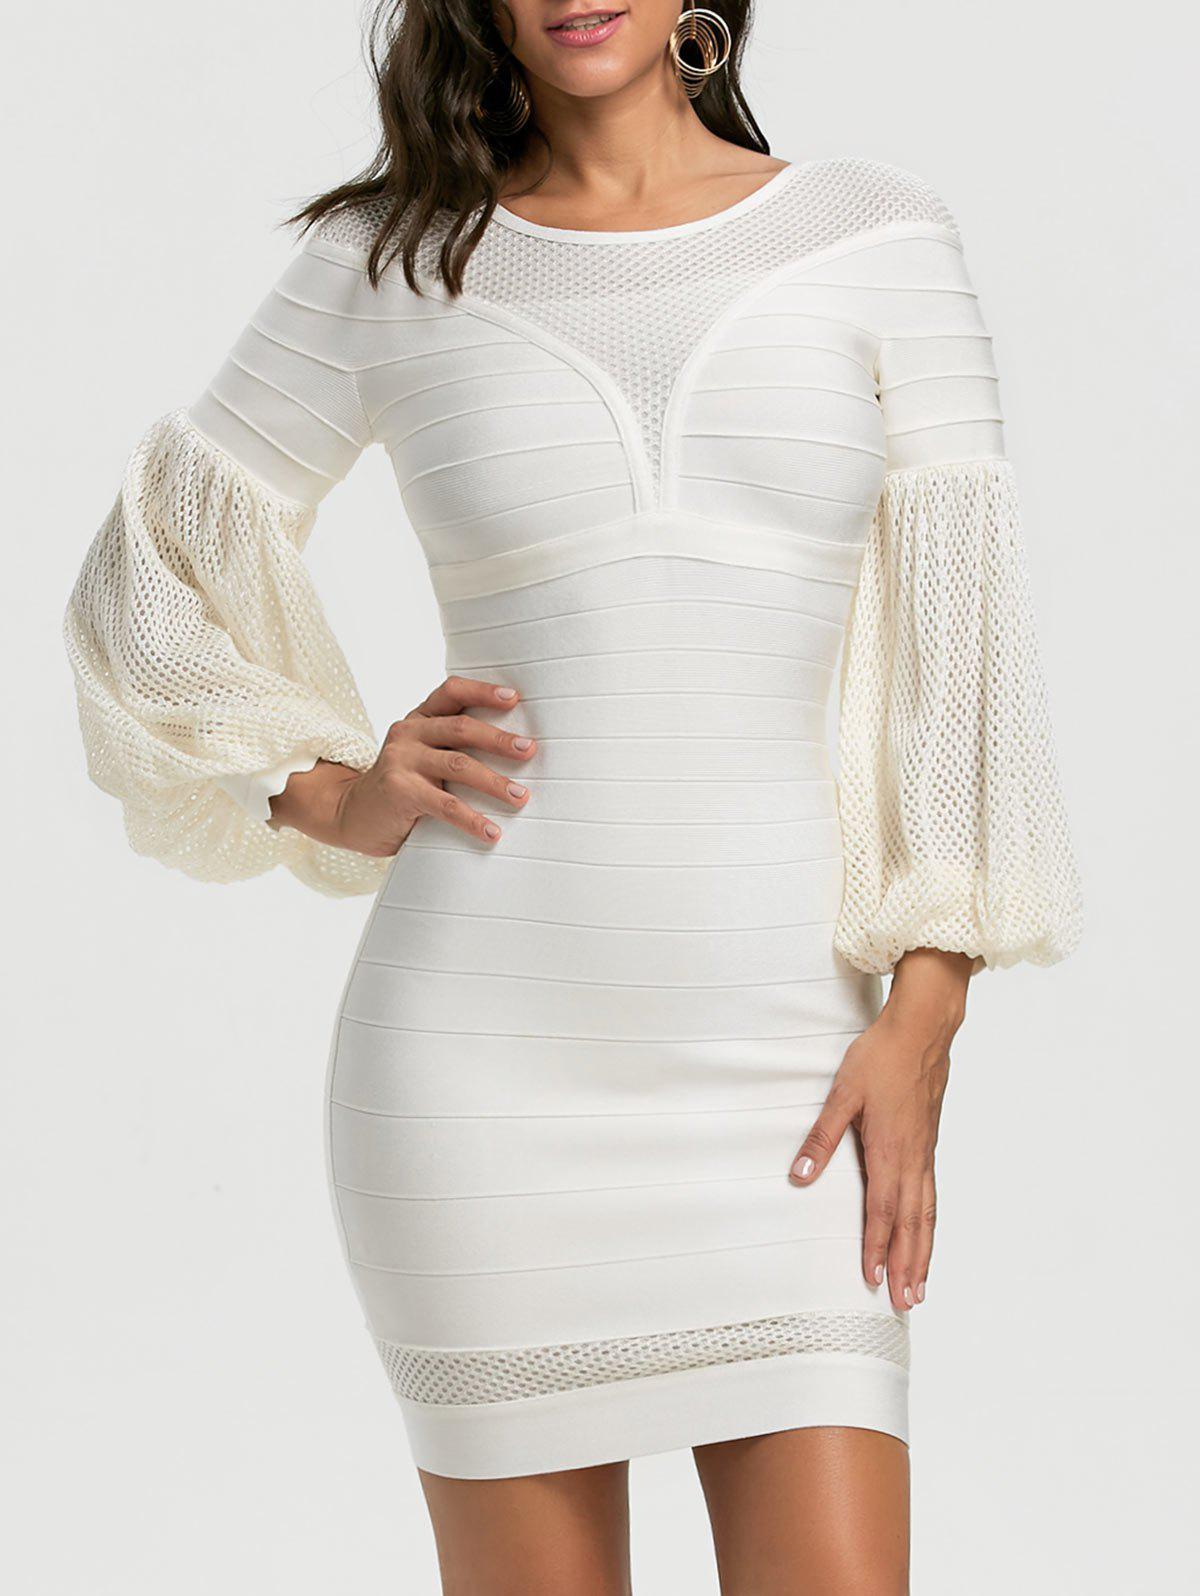 Mesh Insert Lantern Sleeve Bandage Dress - Blanc 2XL